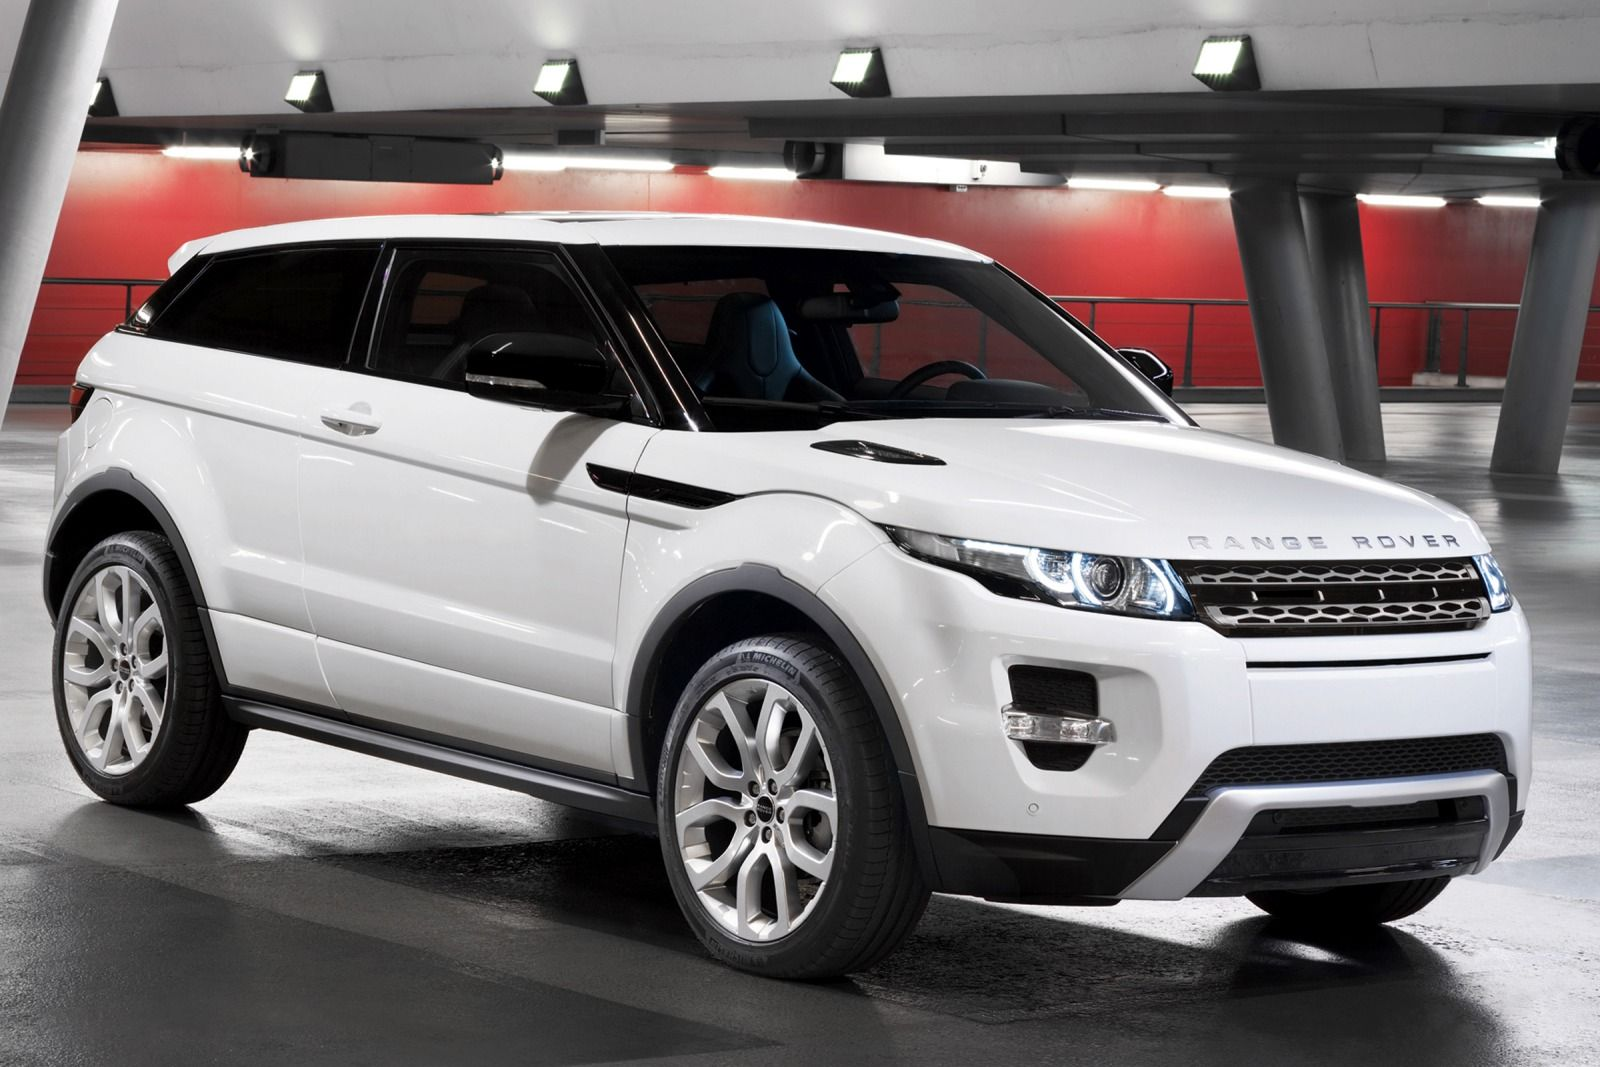 2015 Land rover Range rover evoque – pictures information and specs